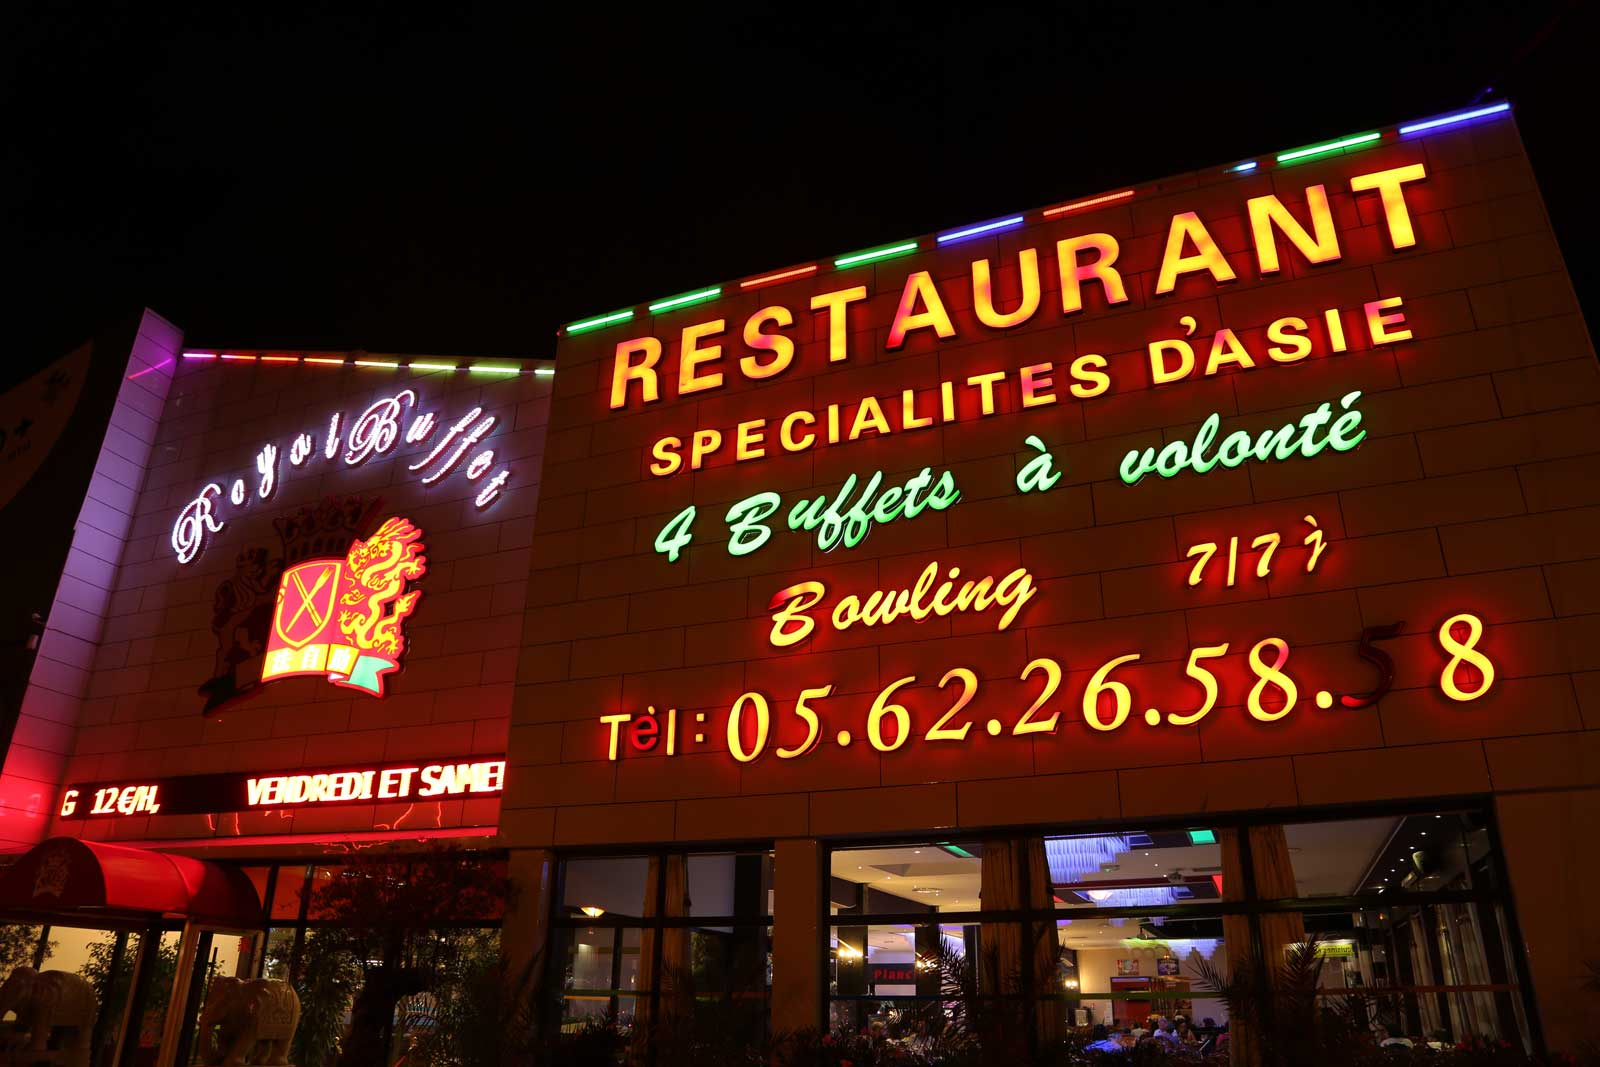 royal-buffet-restaurant-toulouse-avenue-des-etats-unis-restaurant